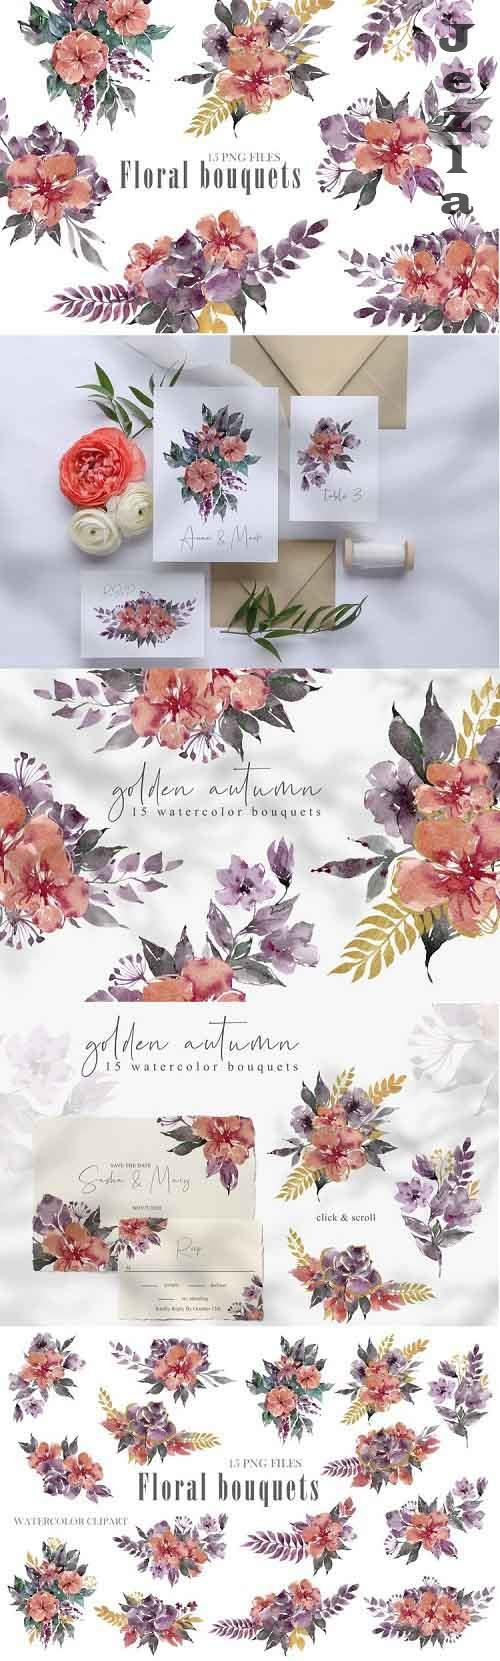 Watercolor bouquets clipart. Summer wreath png files - 911828